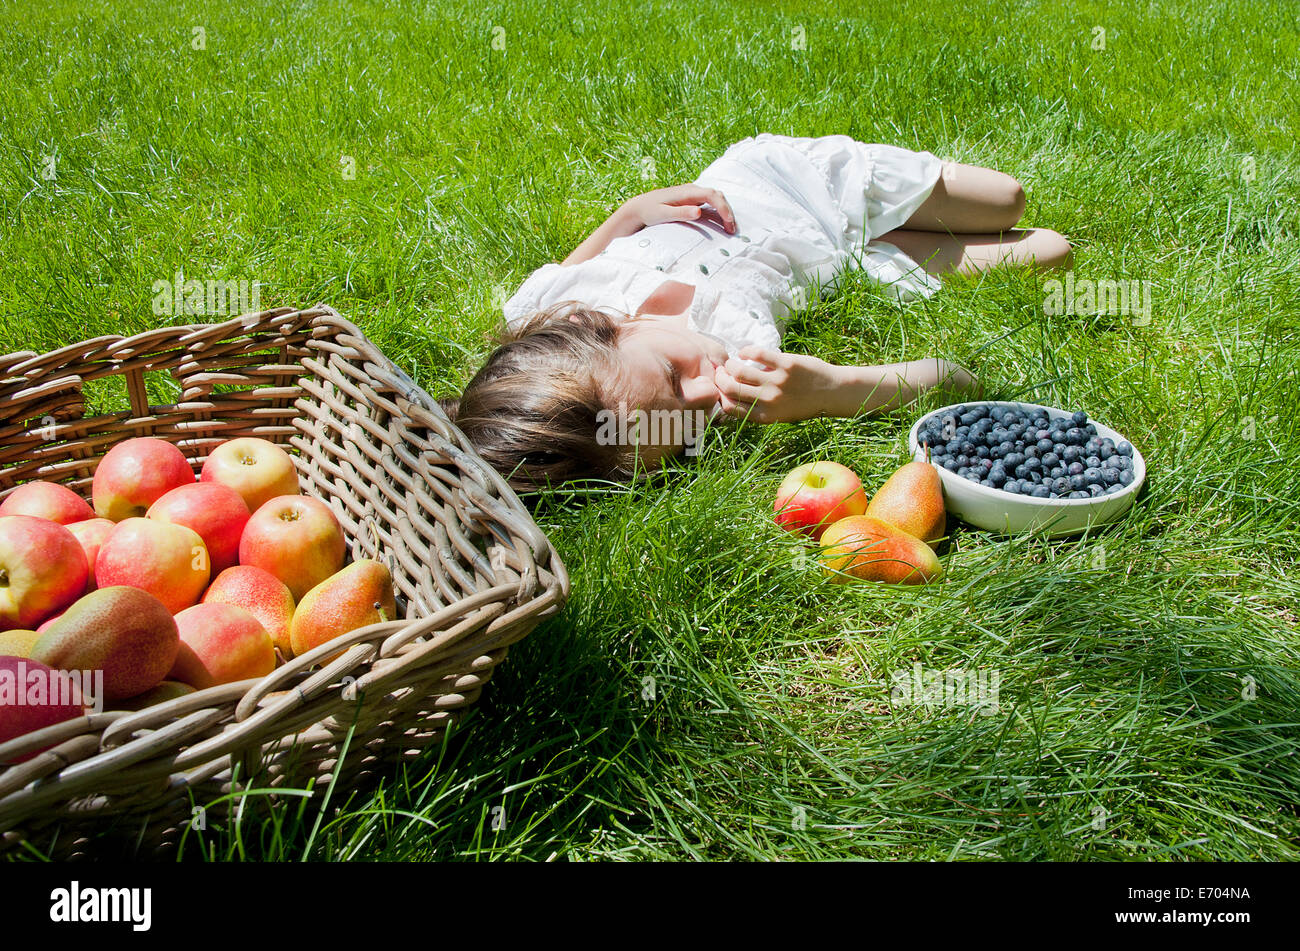 Girl asleep on grass with basket of apples and pears - Stock Image